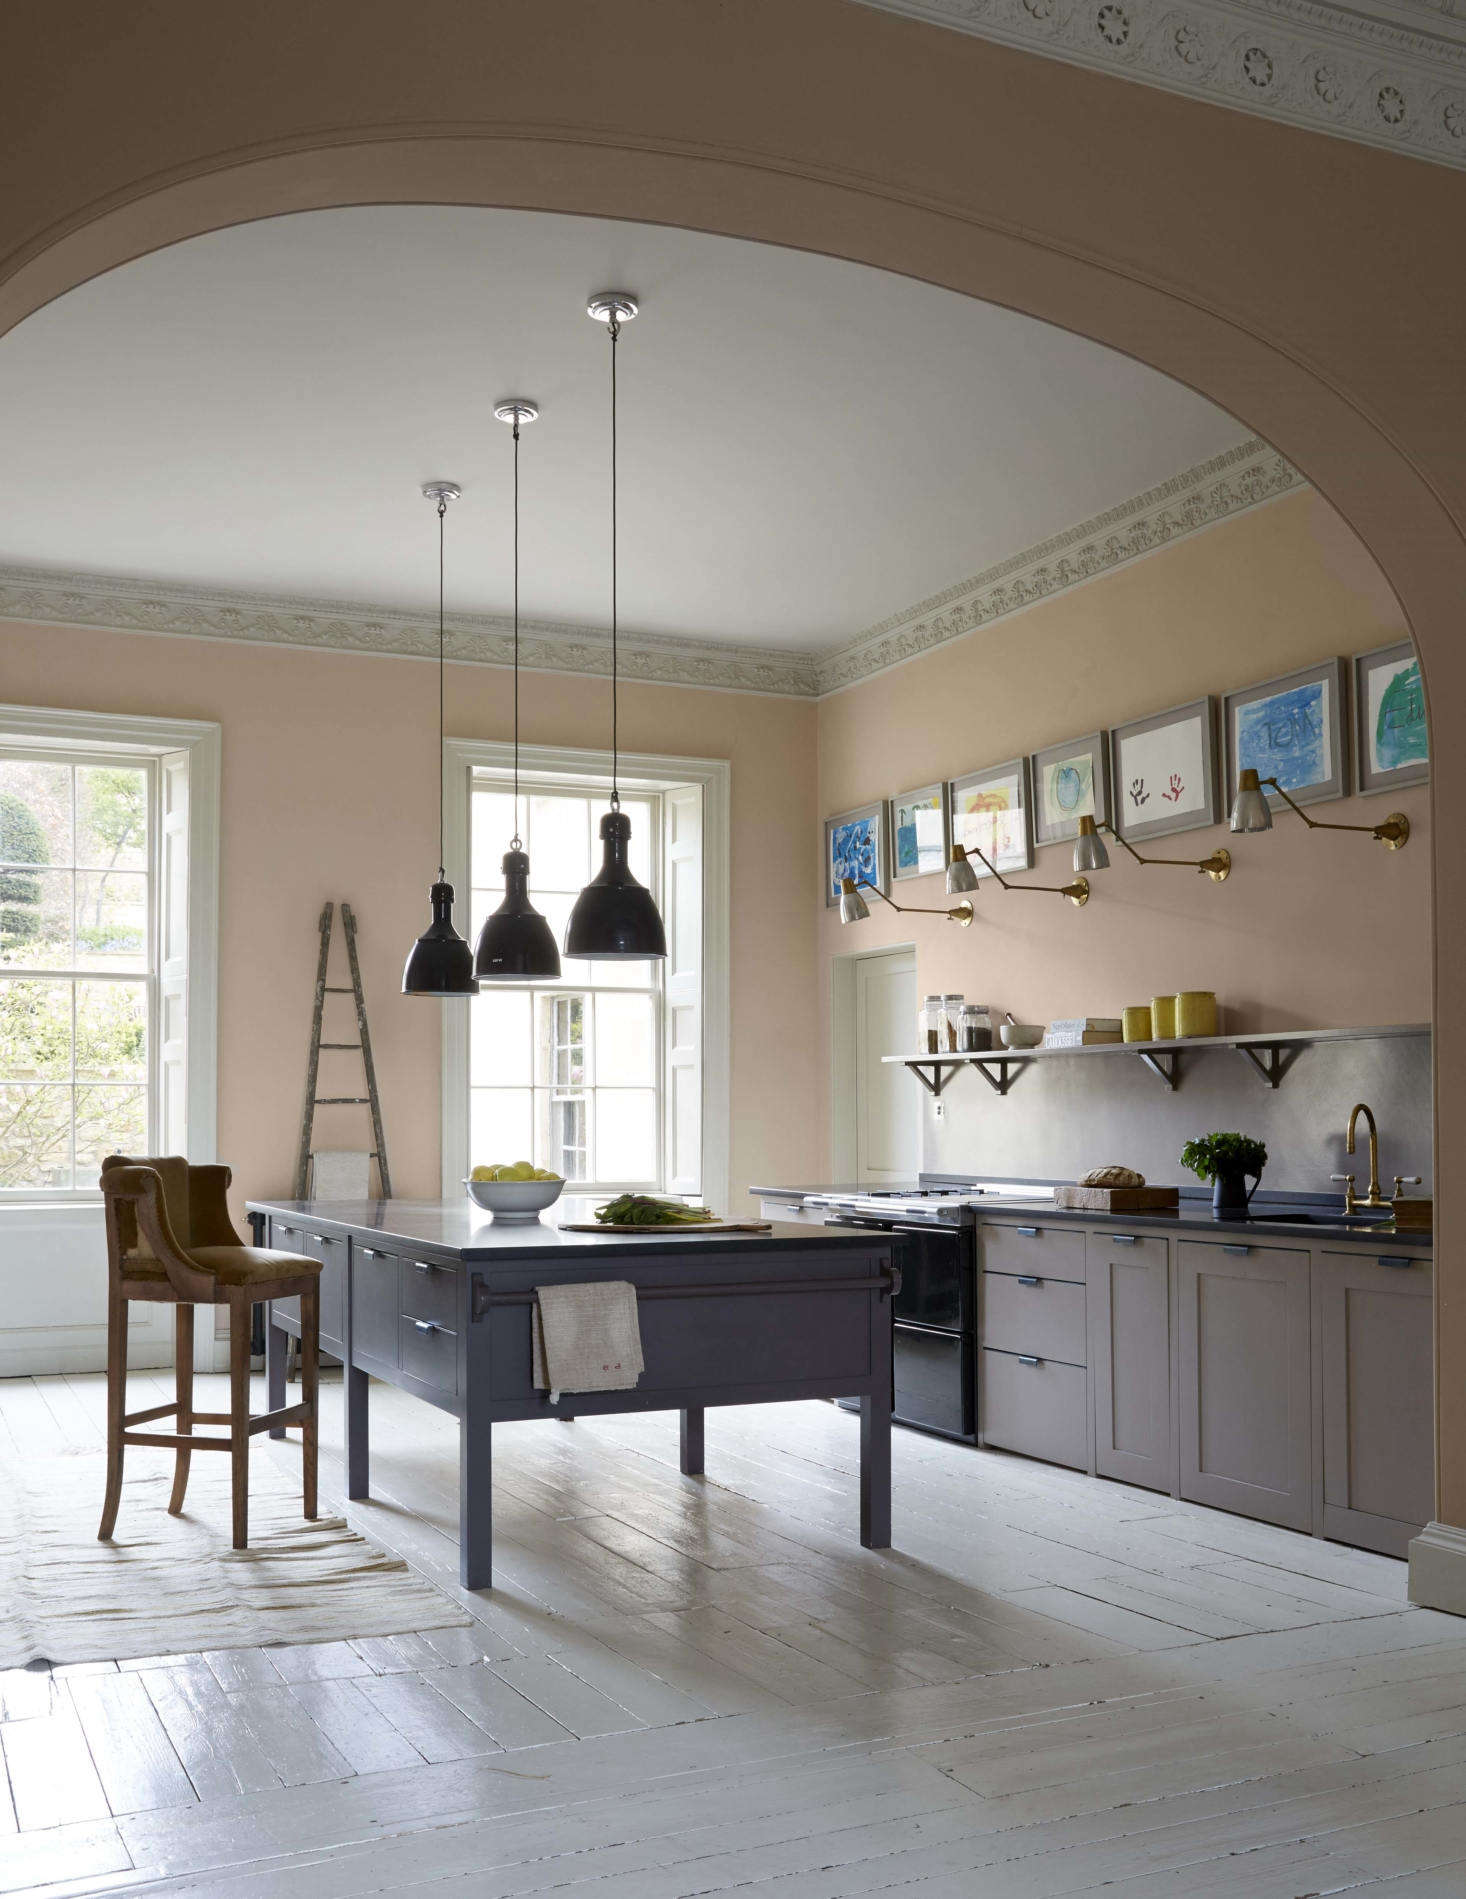 An Eggshell Estate Emulsion Finish Of Farrow Ball Pink Is On The Walls